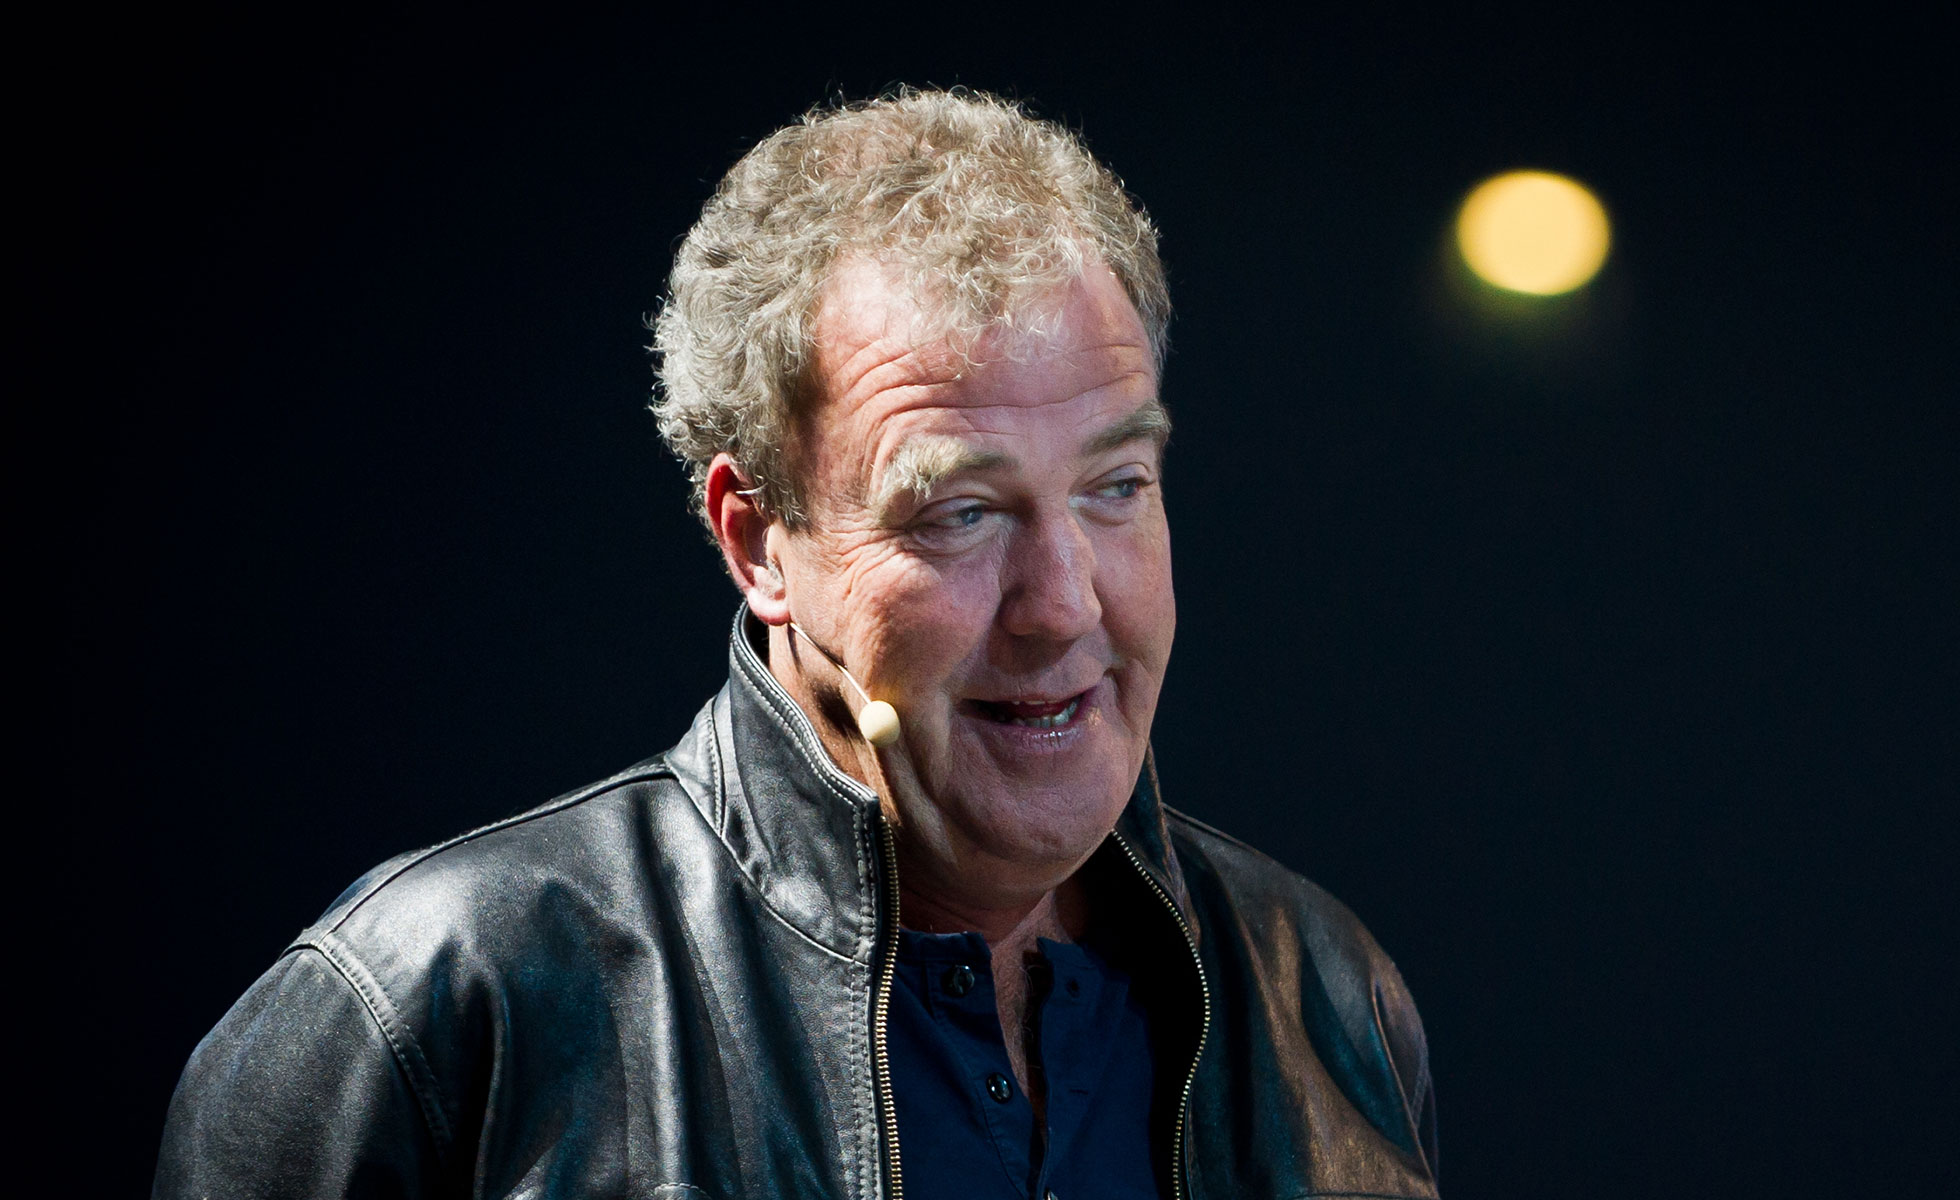 Jeremy Clarkson caught speeding